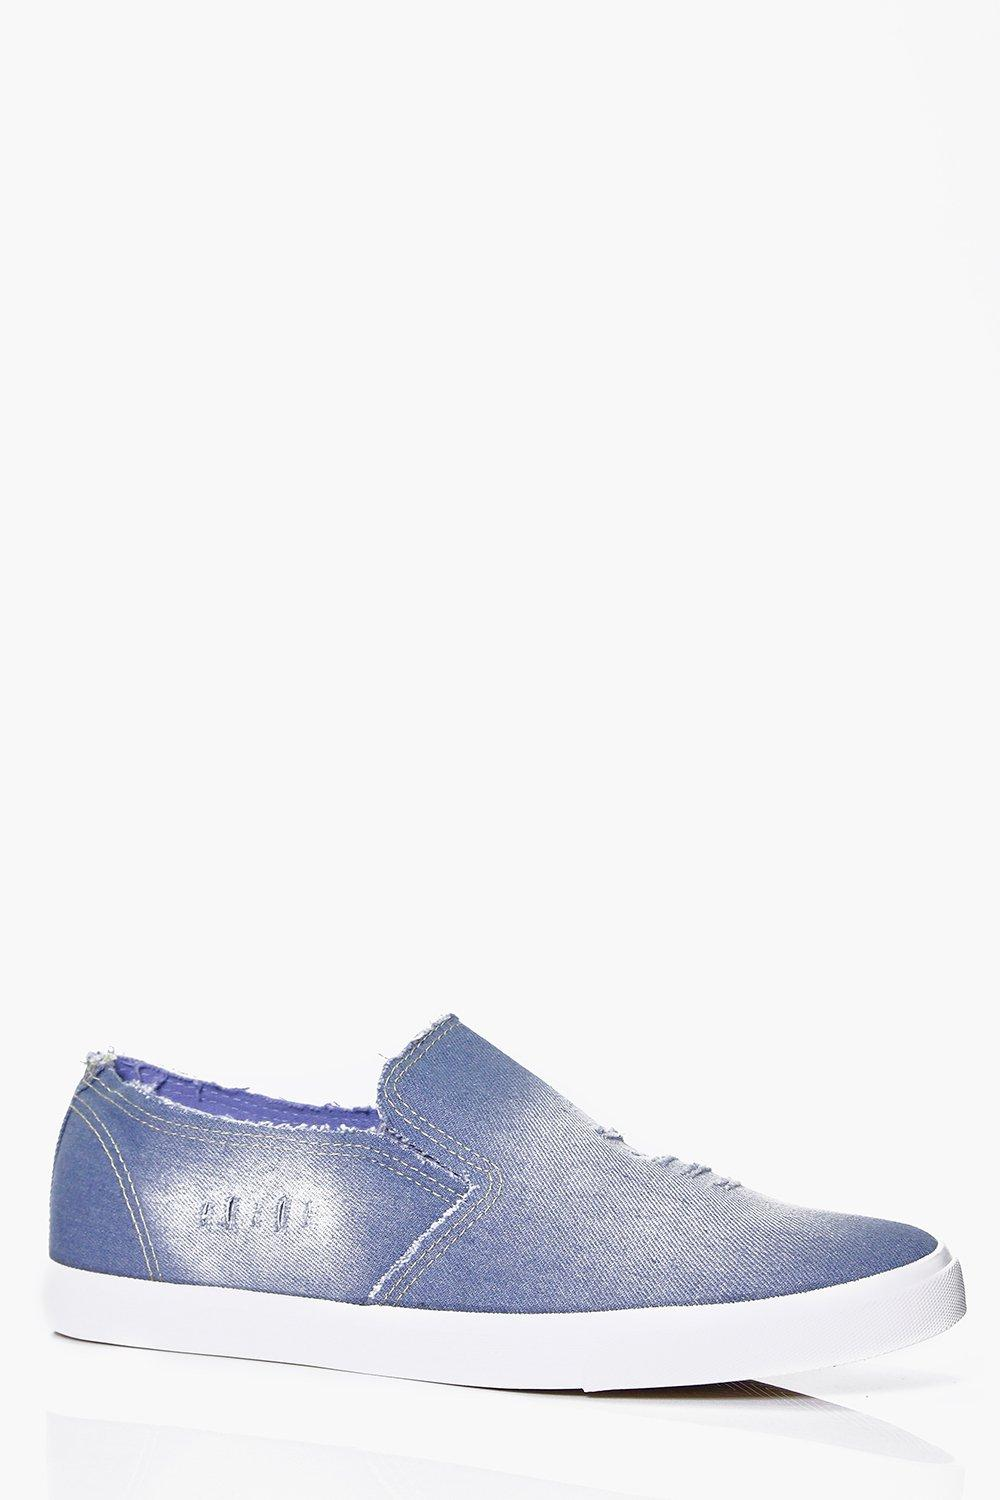 Distressed Washed Blue Slip On Plimsolls